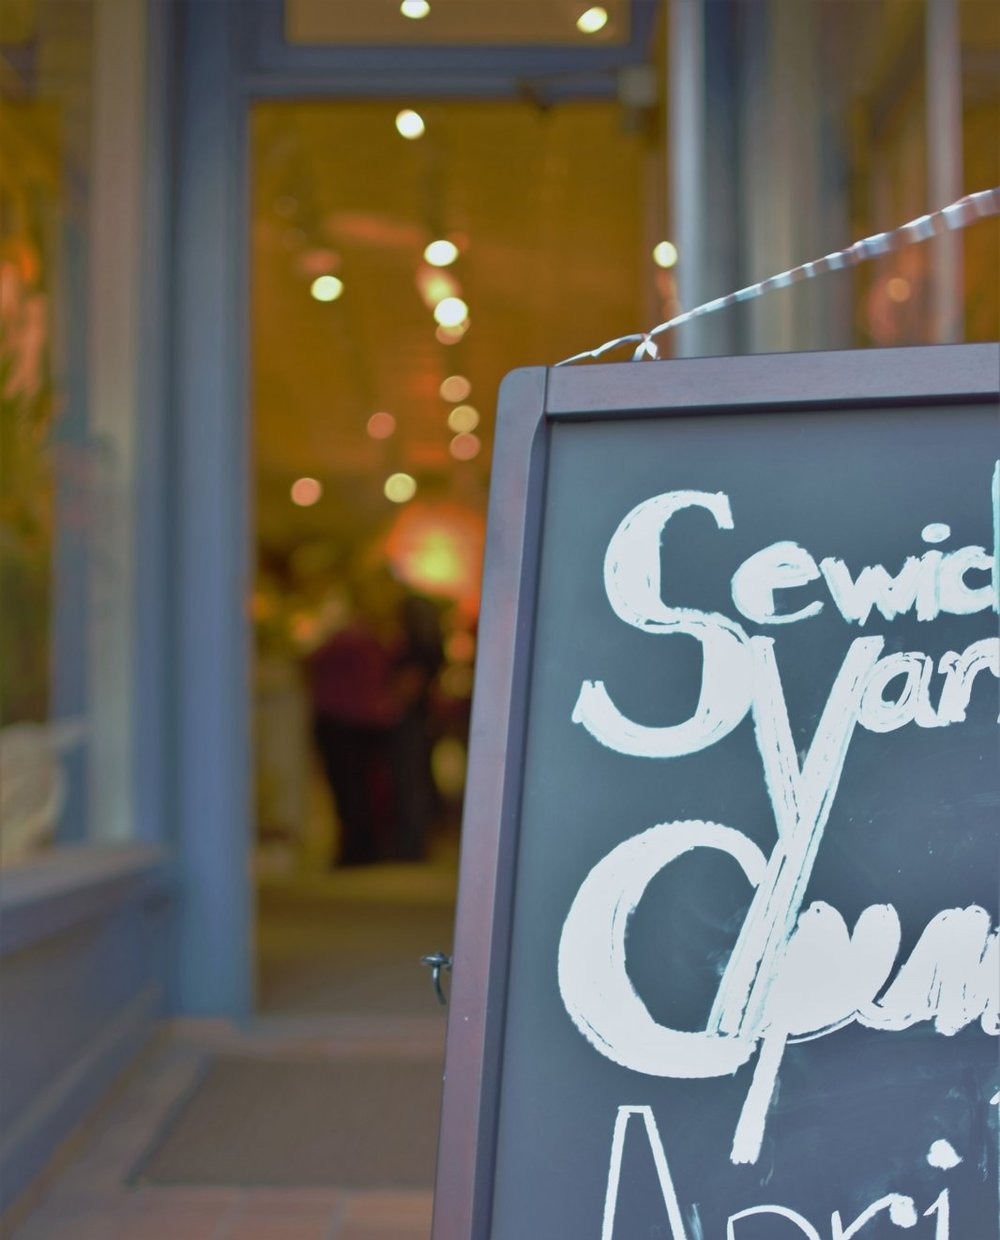 Sewickley Yarns  - Address: 435 Beaver St, Sewickley, PA 15143, USAPhone: +1 412-741-8894http://www.sewickleyyarns.com/